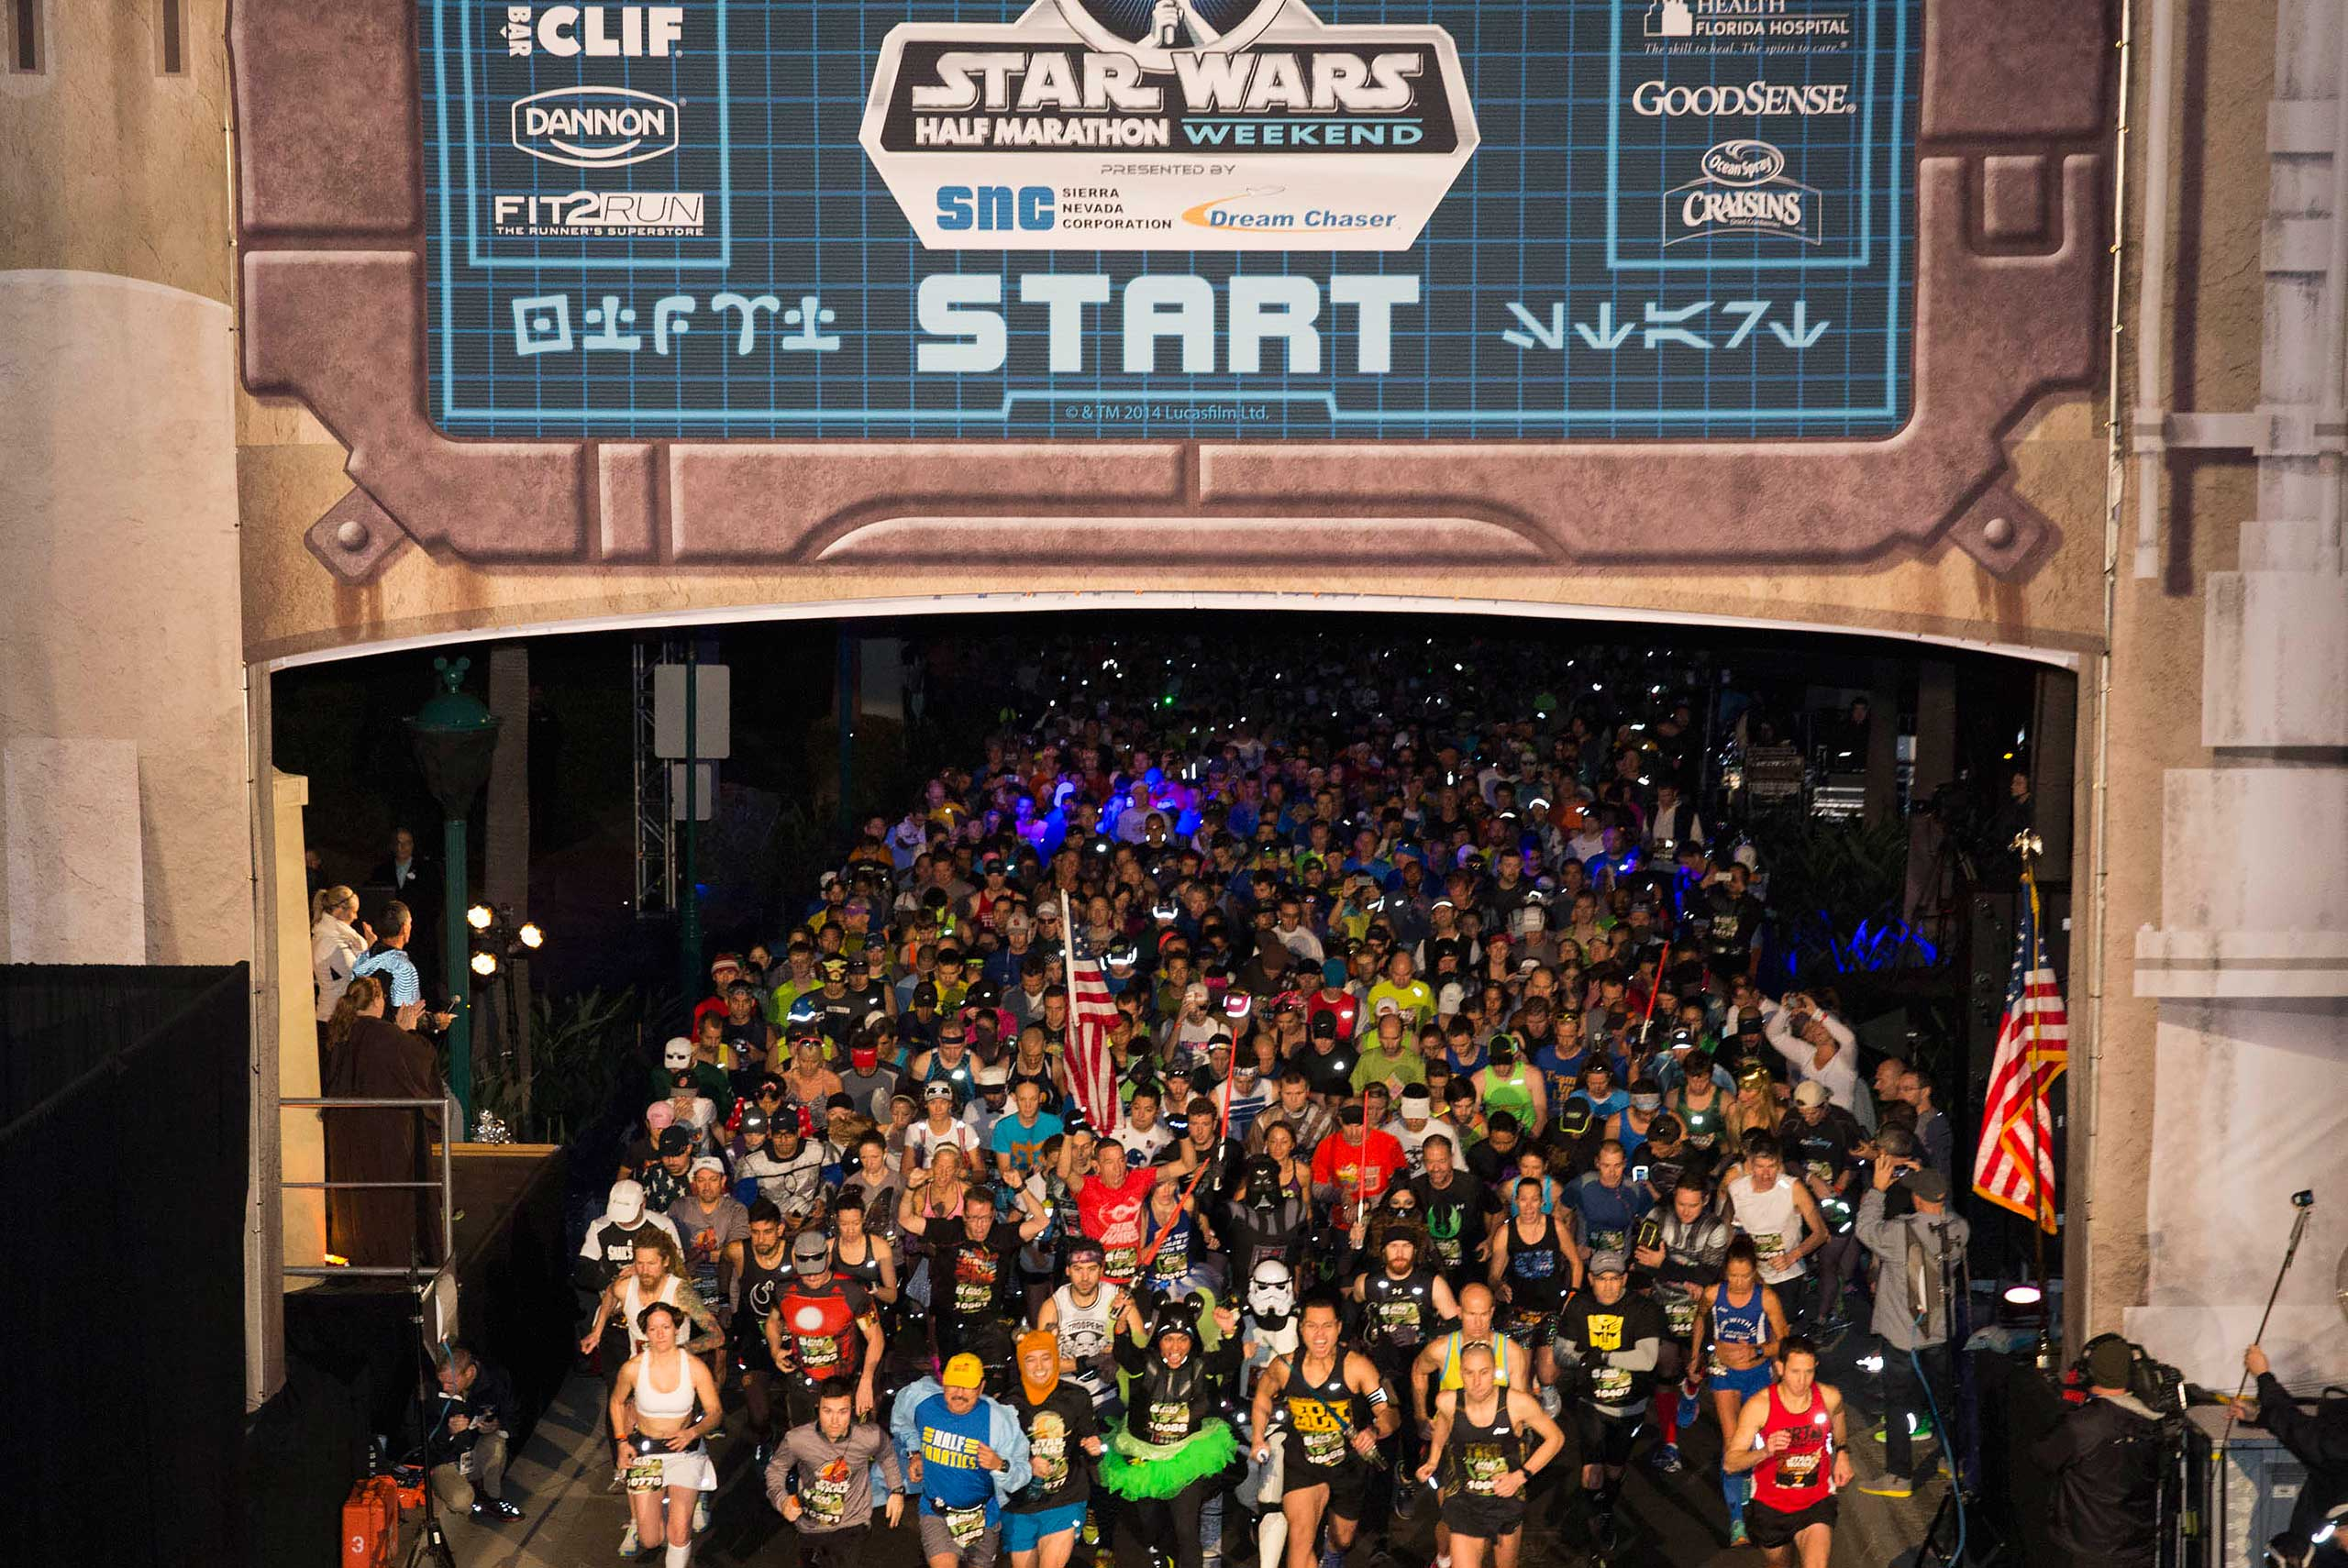 Star Wars Half Marathon start line